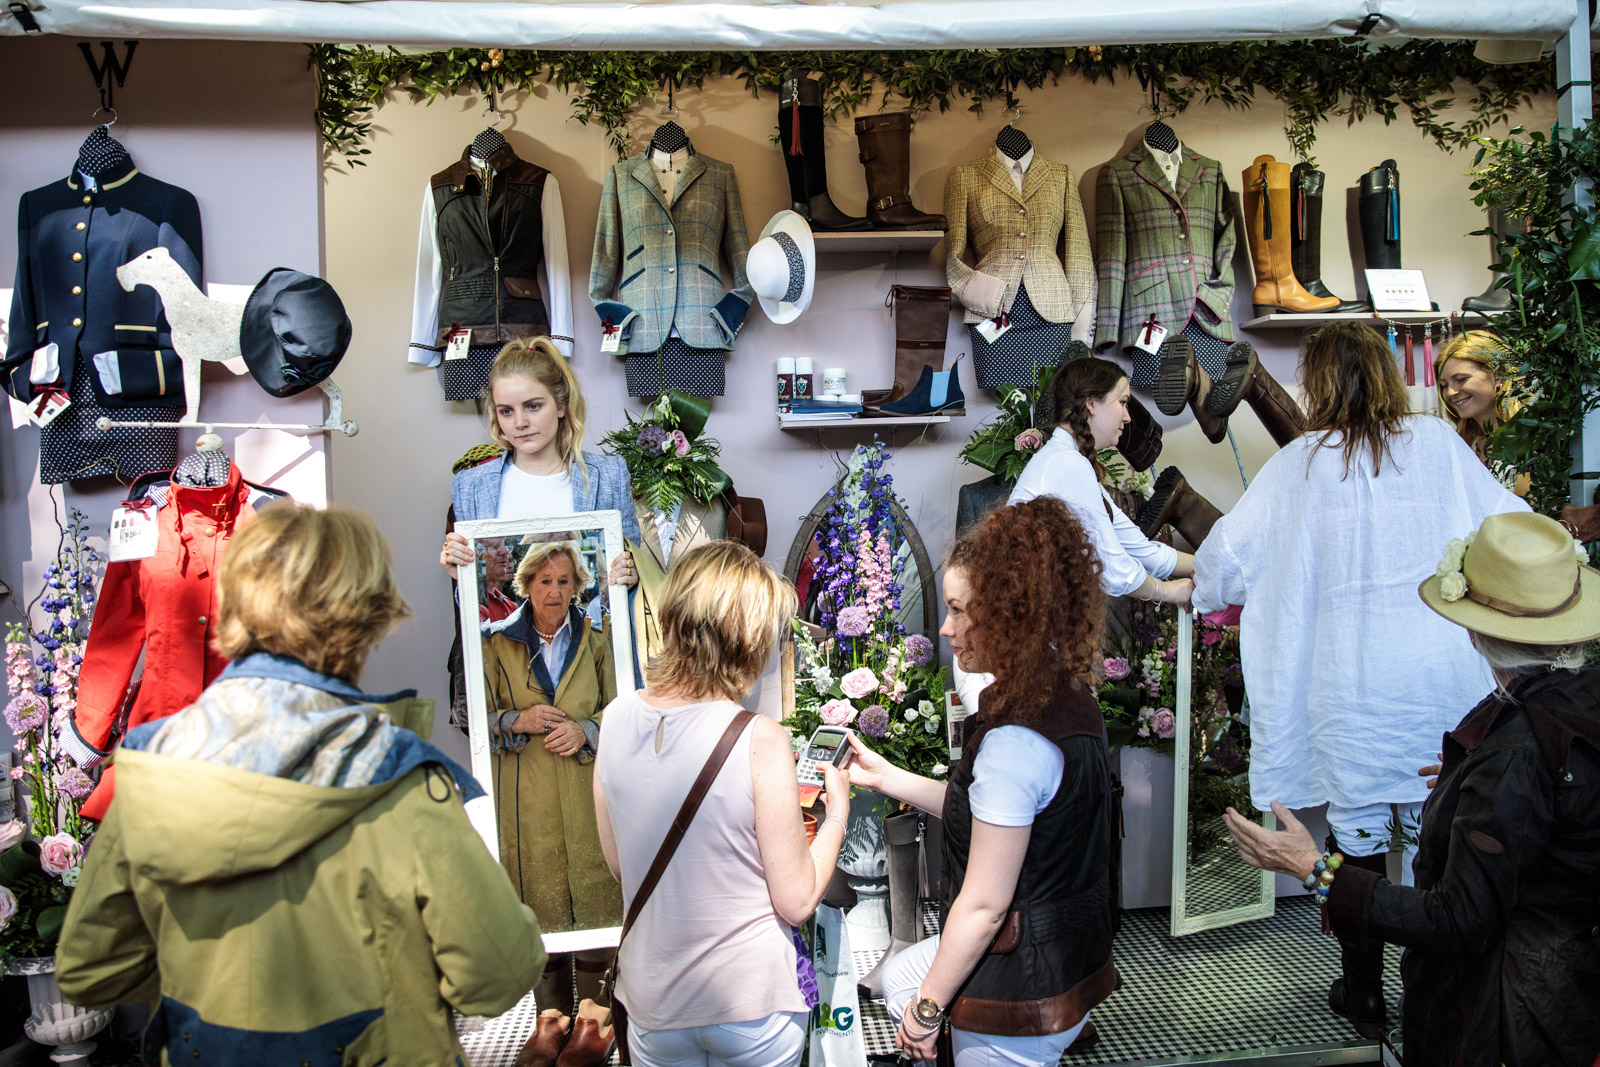 Visitors try-on and purchase clothes at a stall at the Chelsea Flower Show on May 25, 2017 in London.